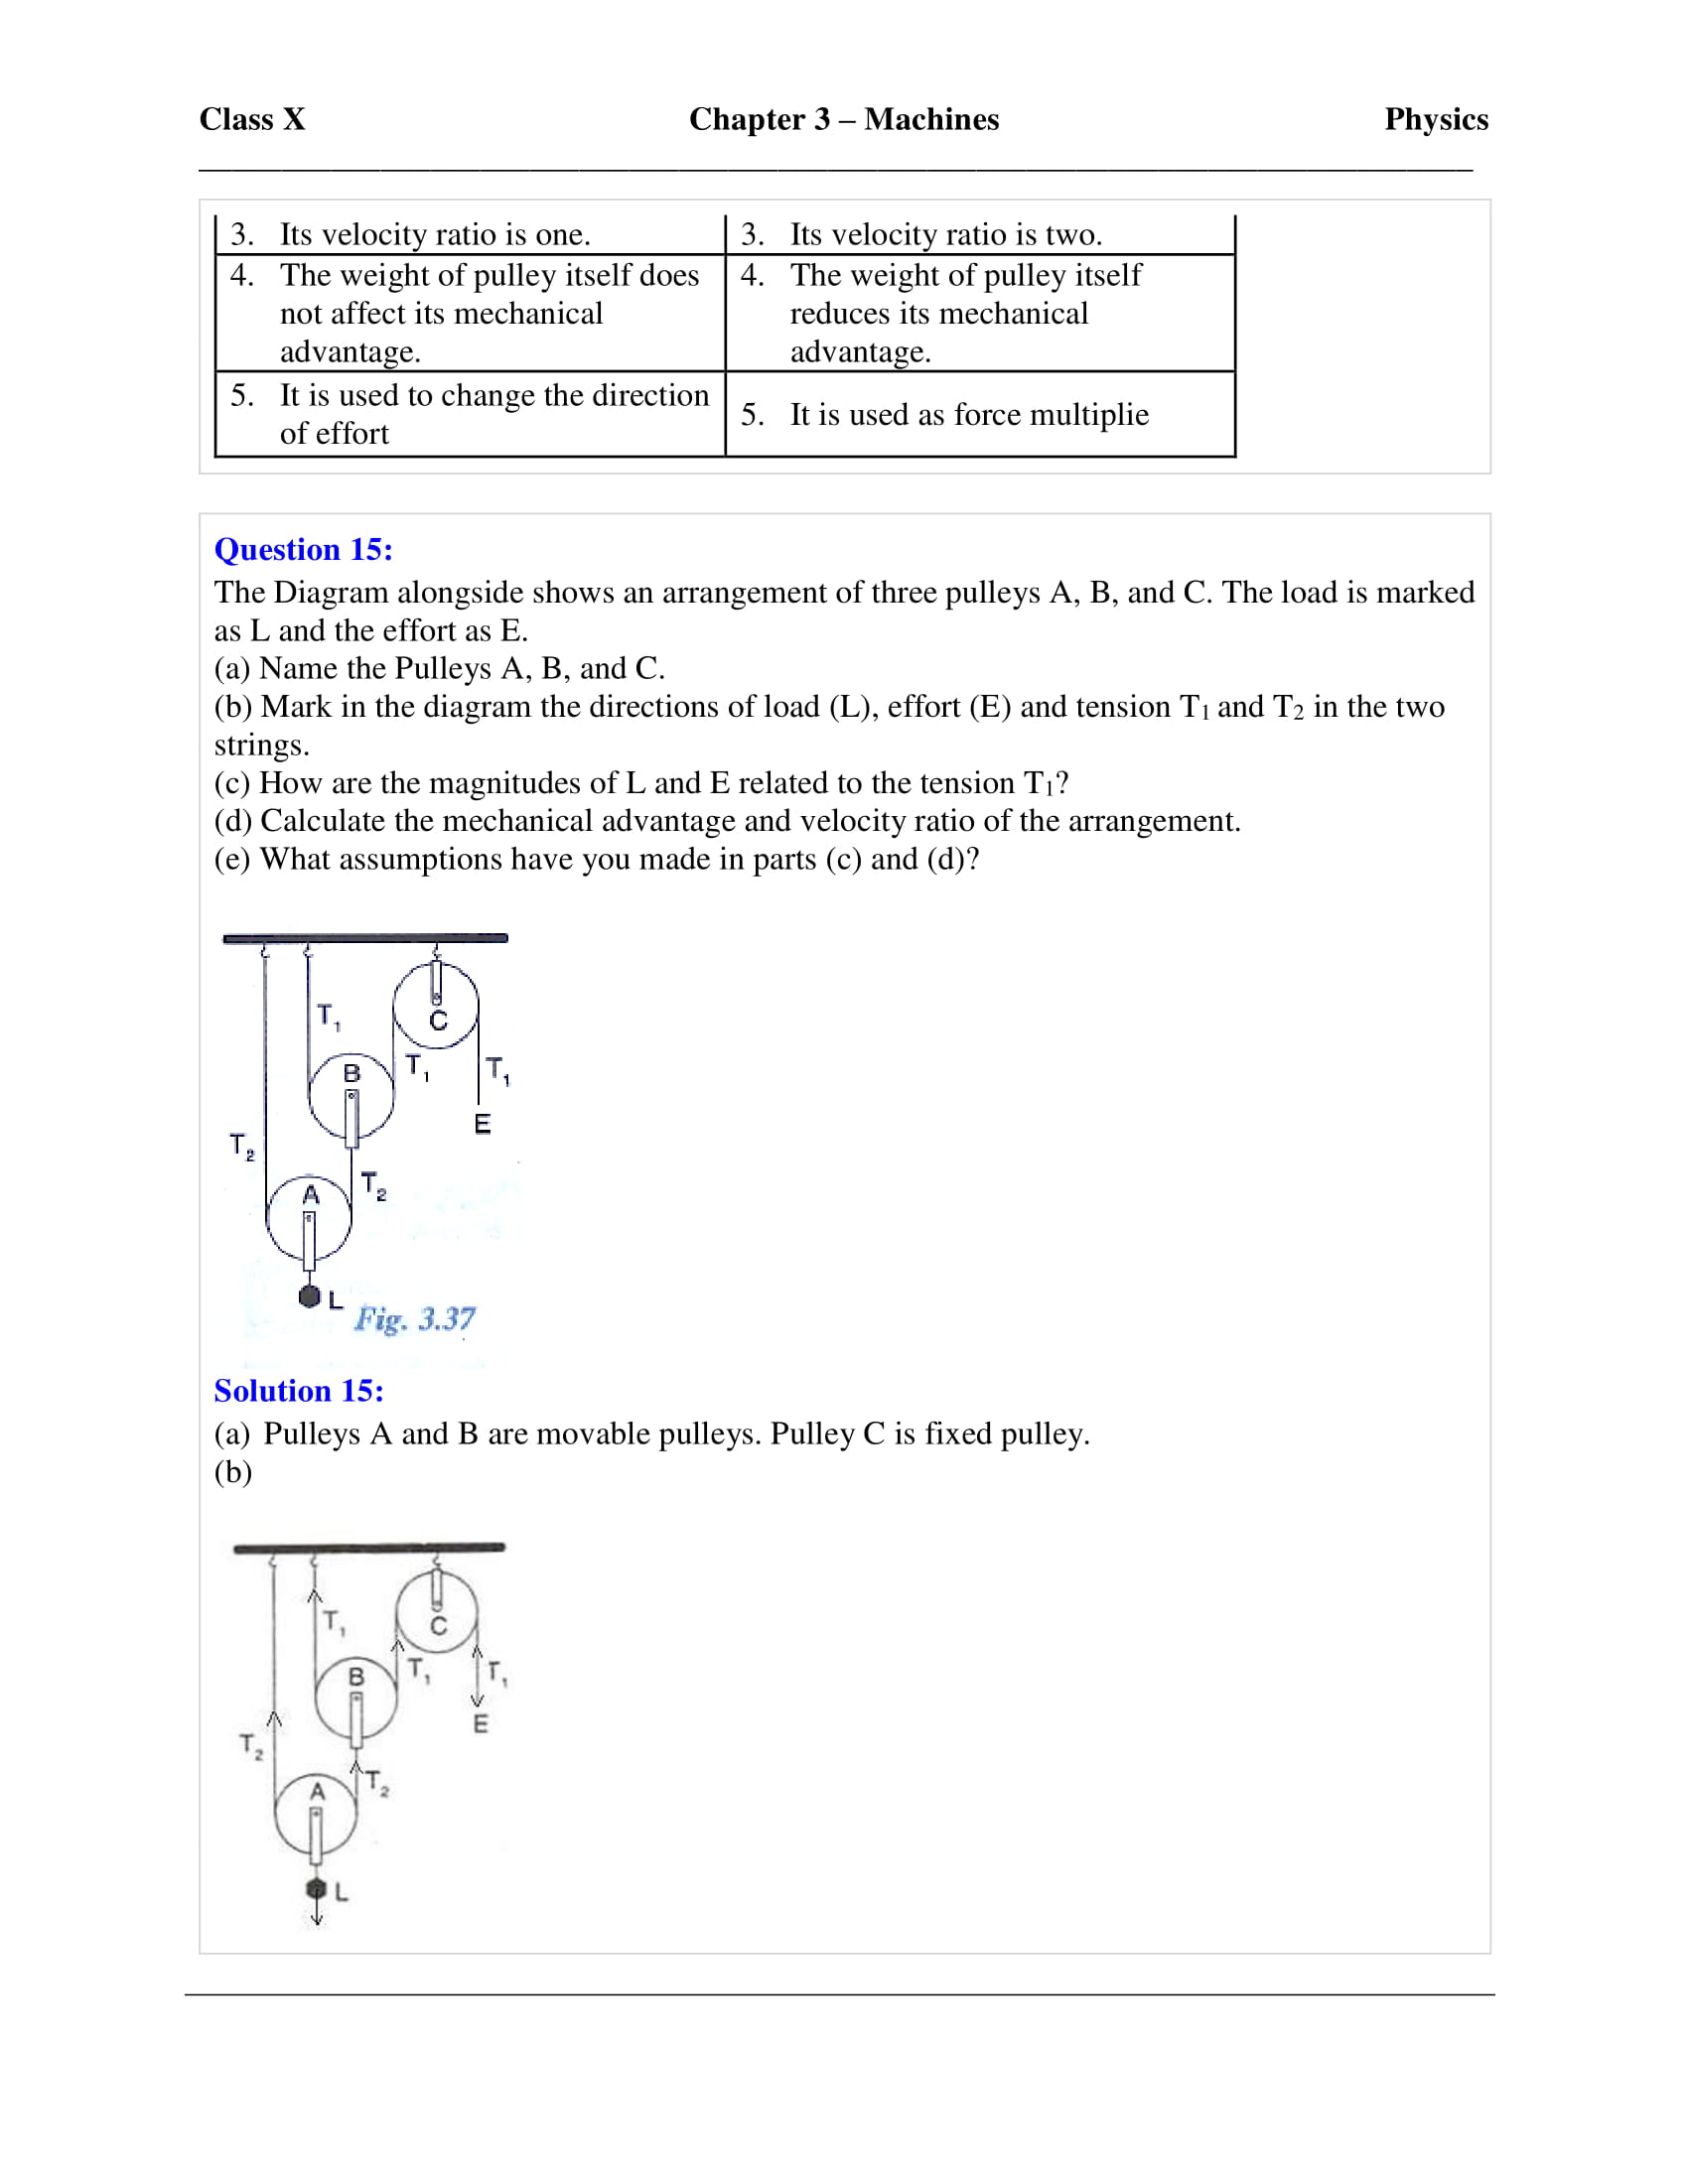 icse-selina-physics-solutions-class-10-chapter-3-machines-31